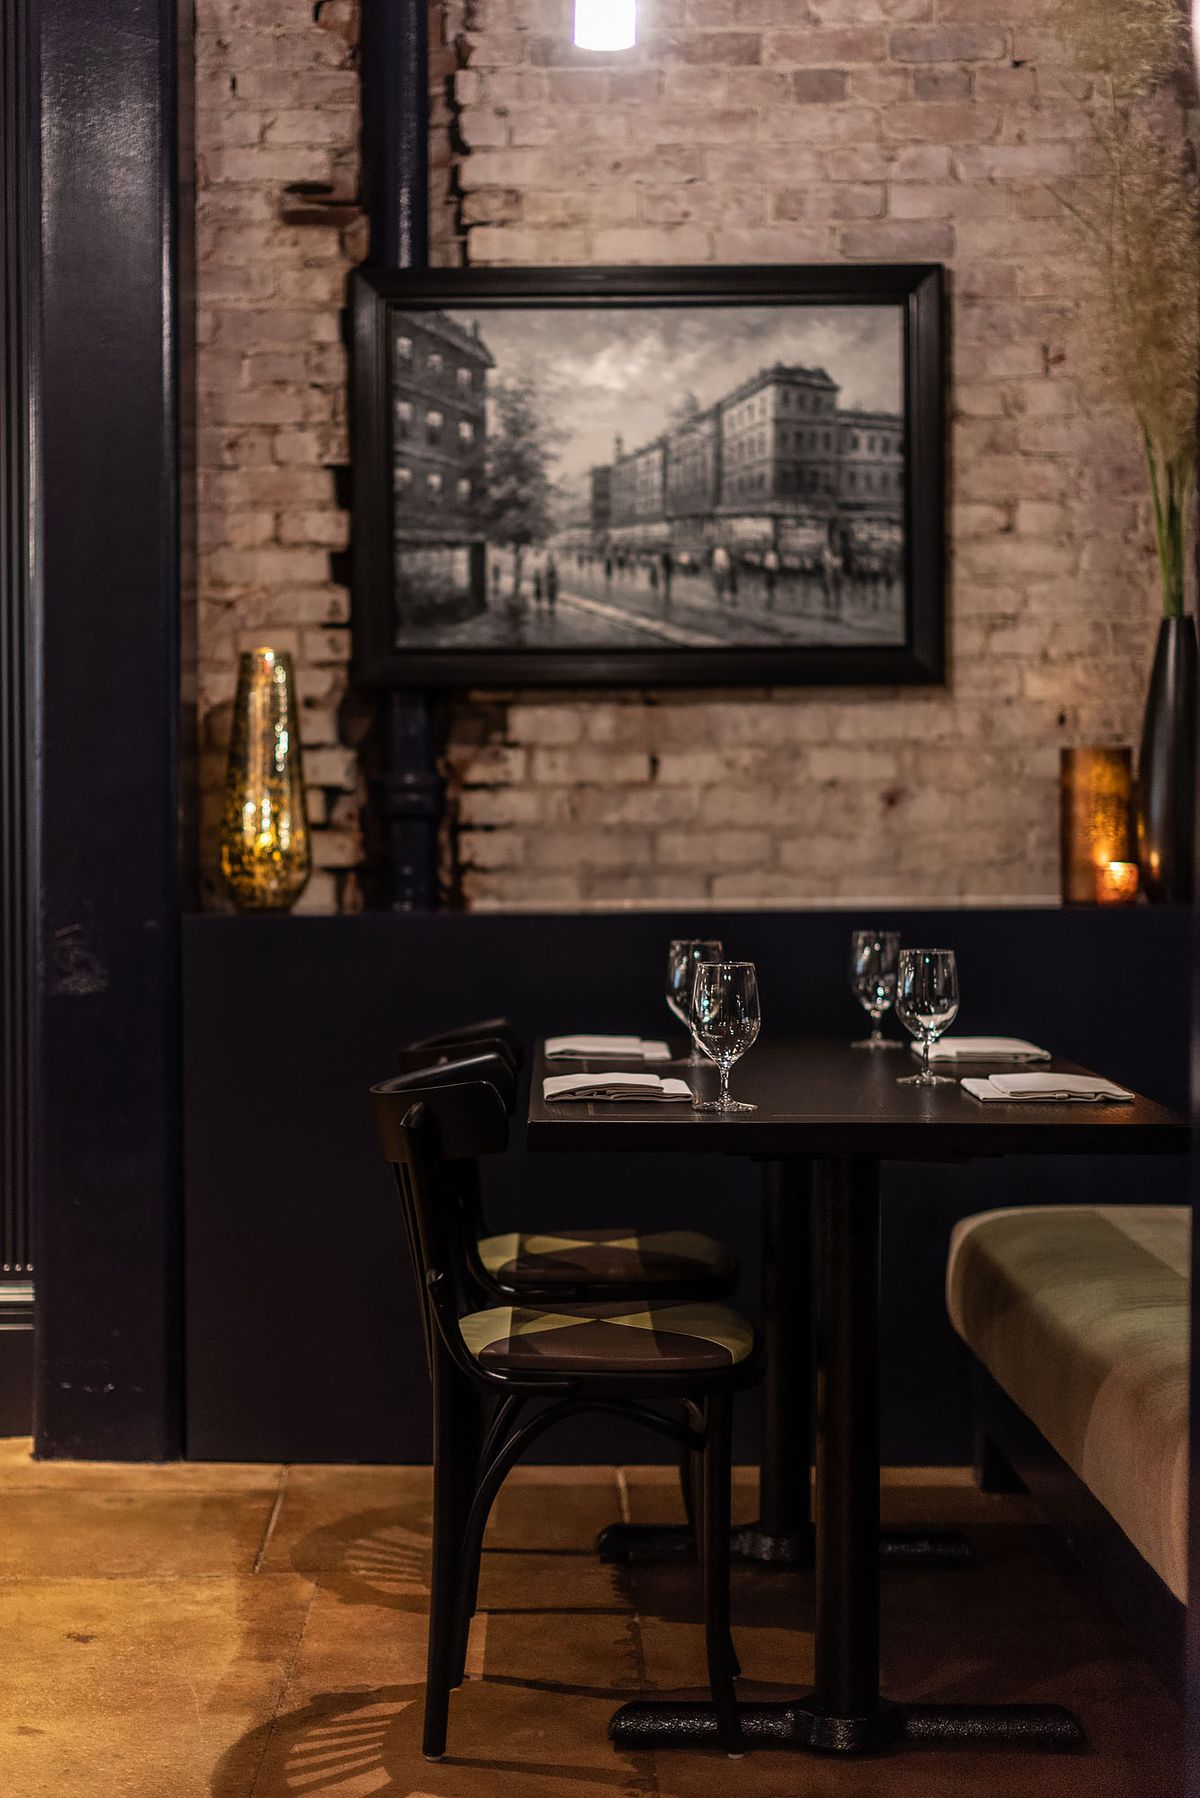 A black and white photo and bistro chairs in a nice room.